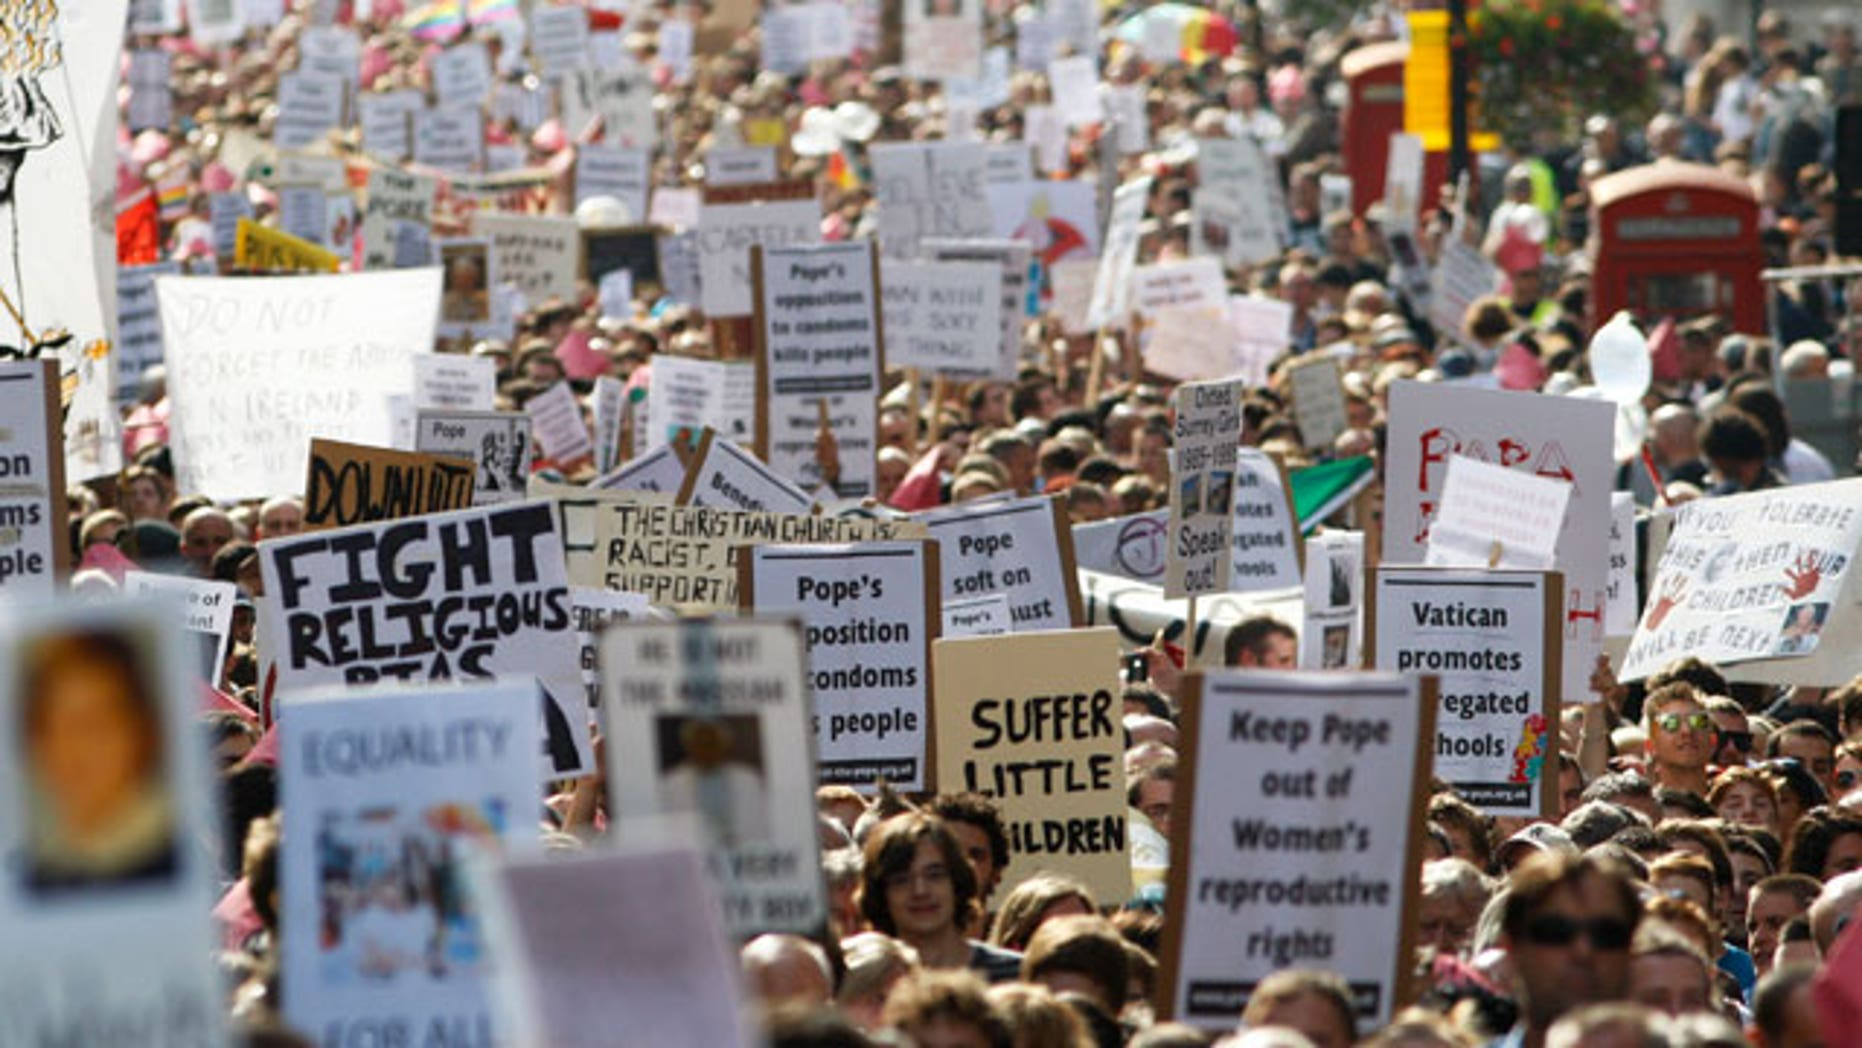 Thousands of people march through central London to protest against the State visit of Pope Benedict XVI to Britain, Saturday, Sept. 18, 2010. Pope Benedict XVI is on a four-day visit, the first-ever state visit by a Pope to Britain.